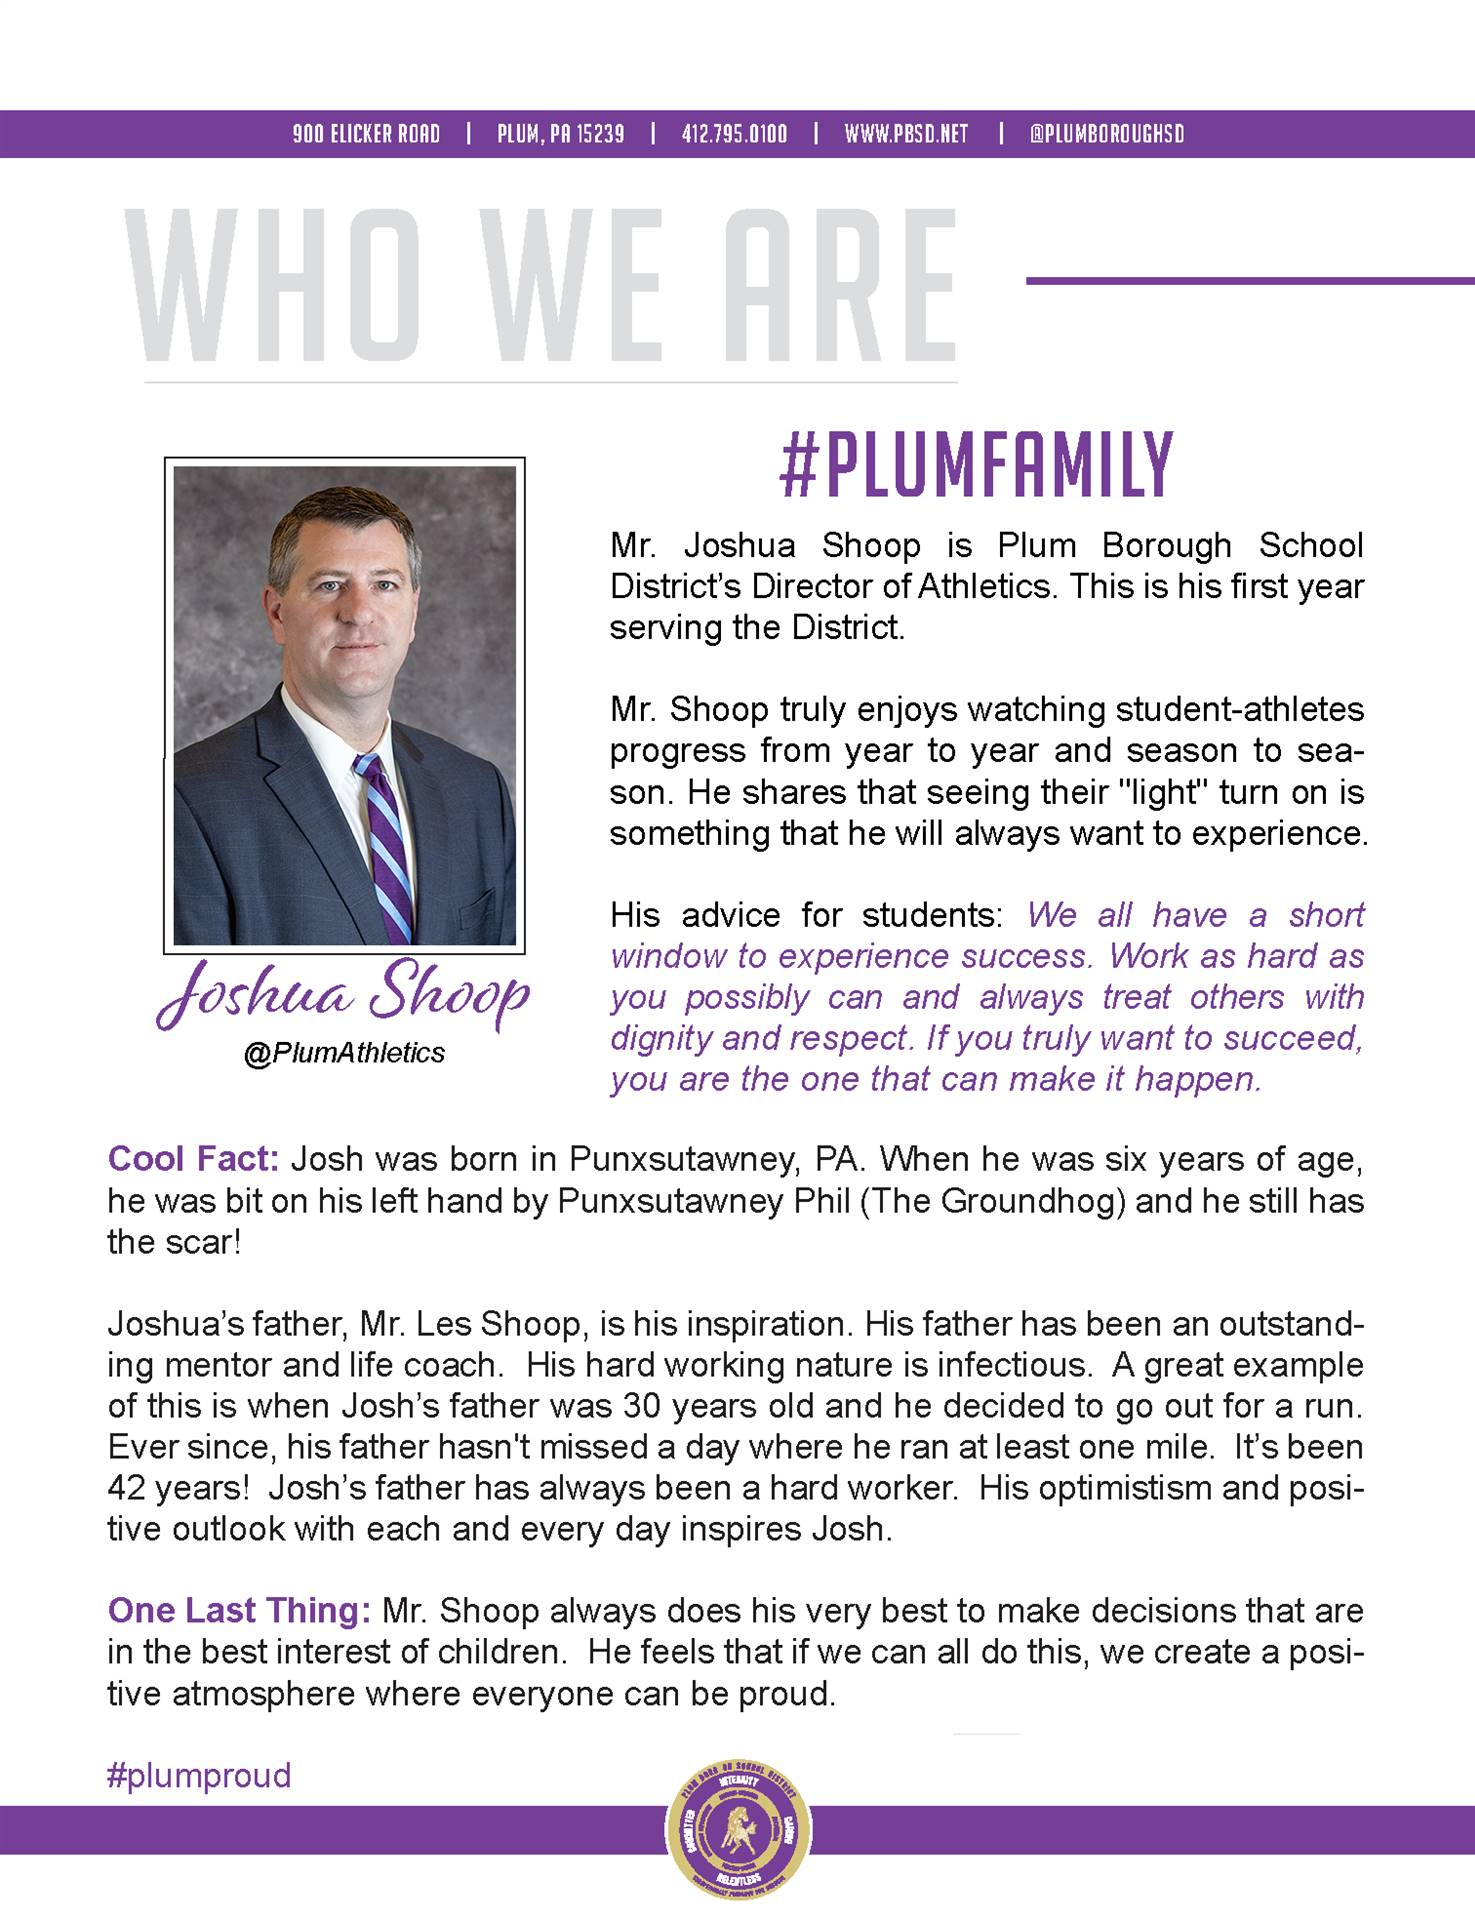 Who We Are Wednesday features Joshua Shoop.